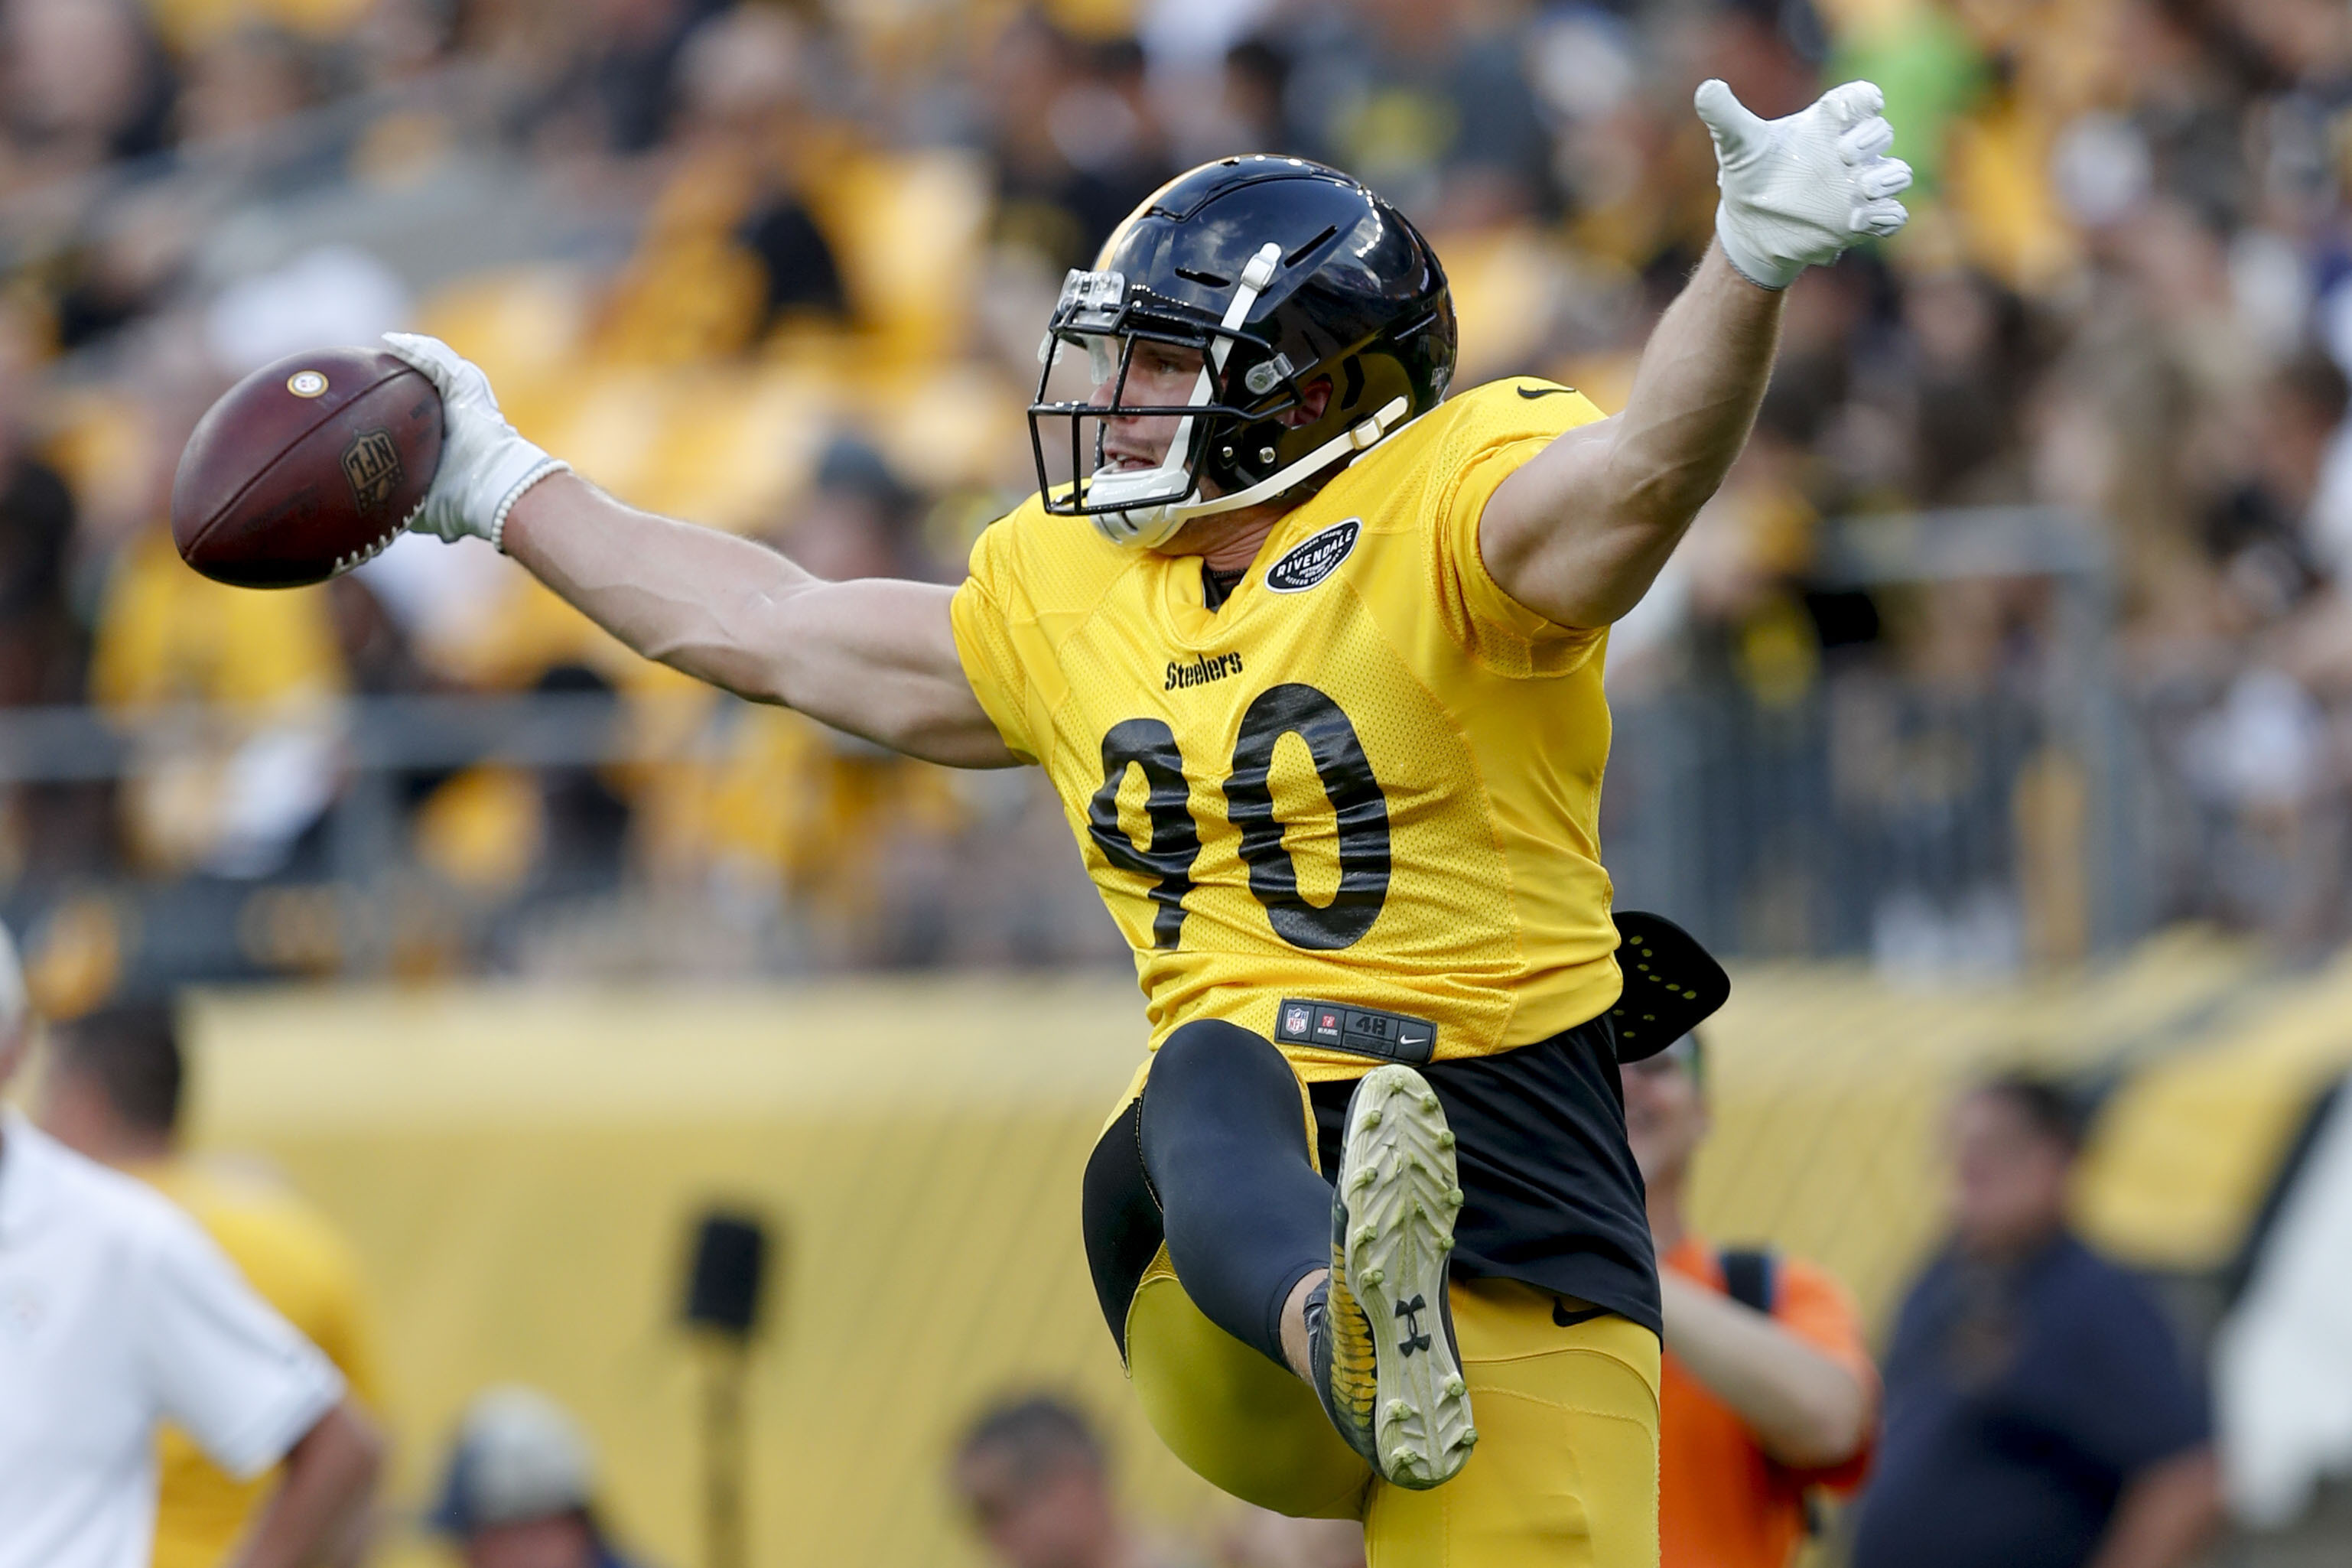 Steelers' T.J. Watt seeks to build on breakout season